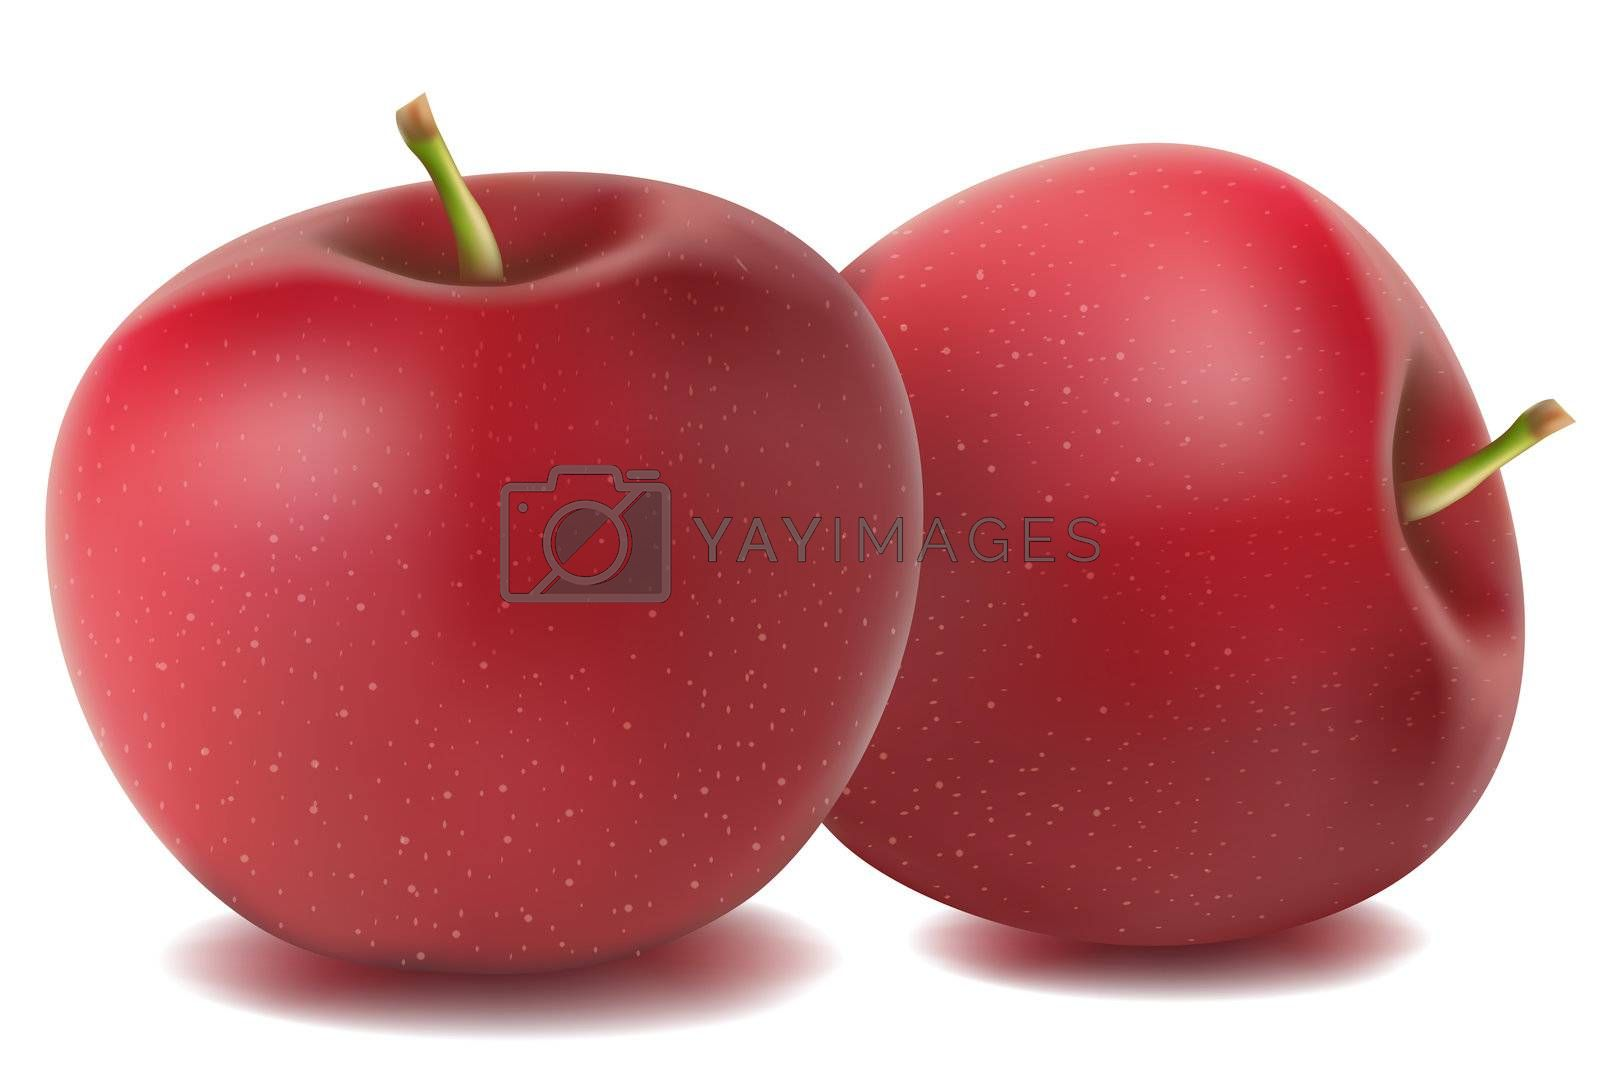 illustration of apples on white background